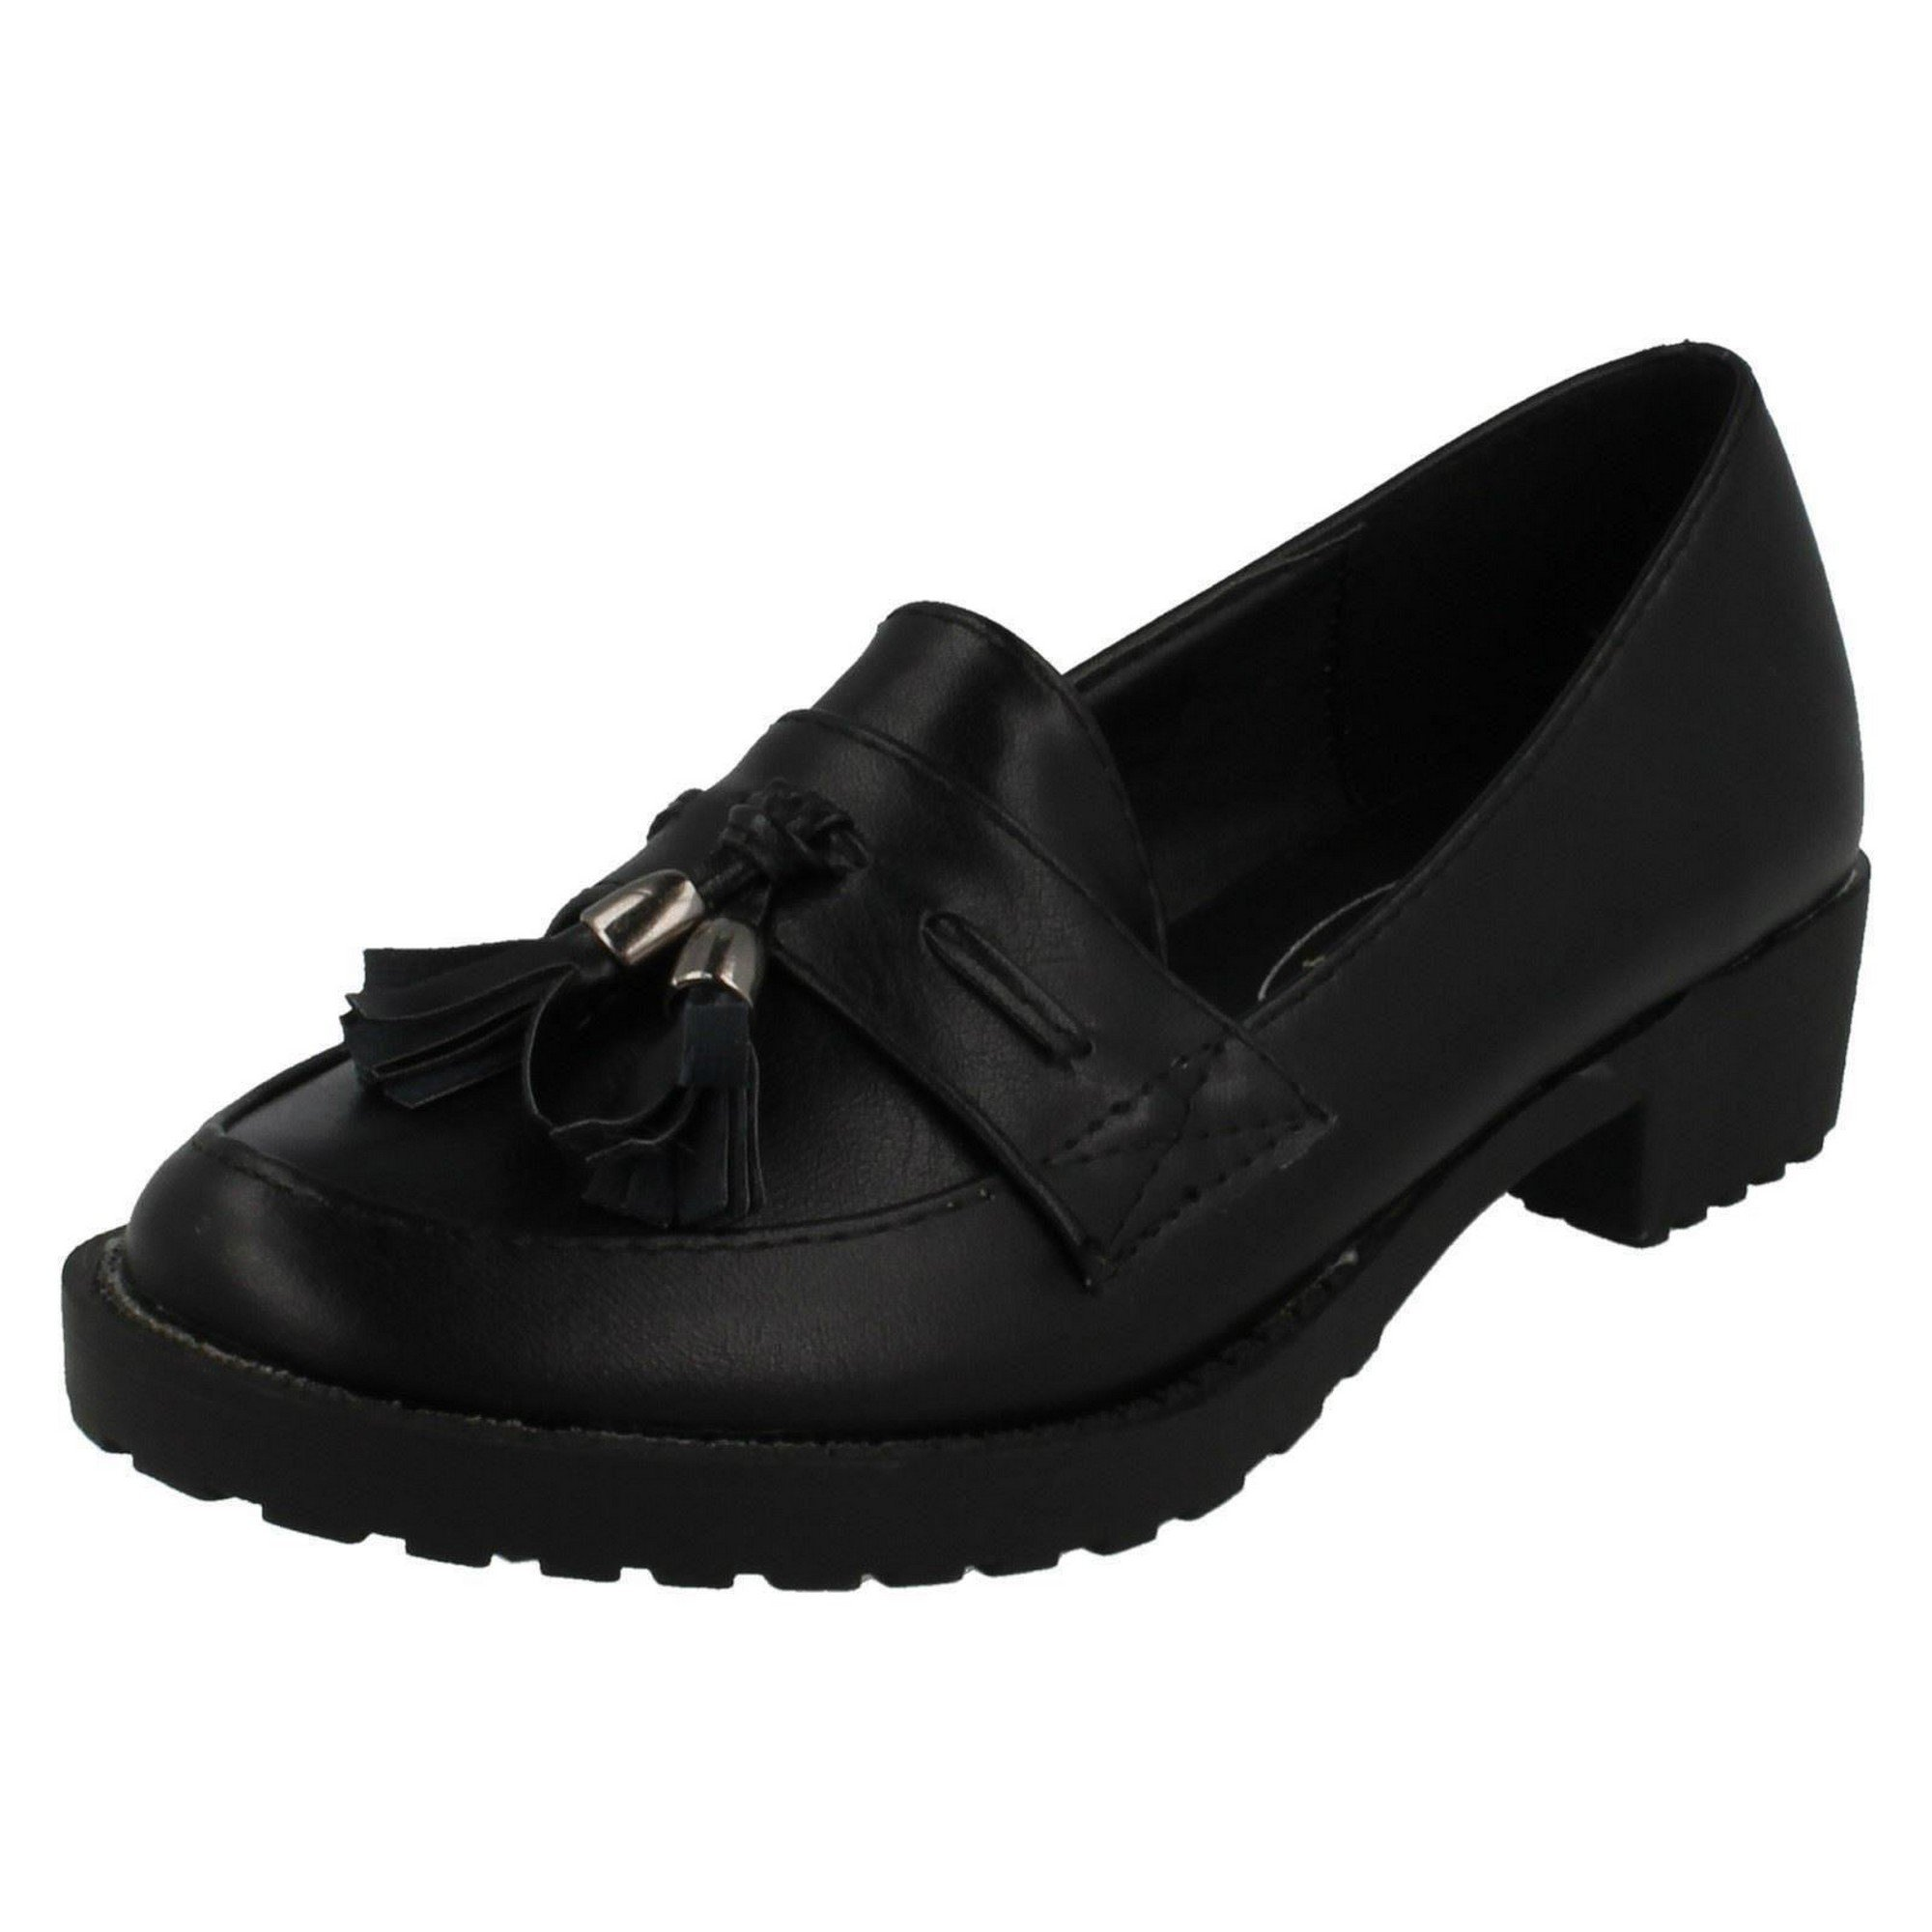 Spot On Childrens Girls Casual Tassel Trim Flat Loafers (US Size 1 Junior) (Black) by Spot On